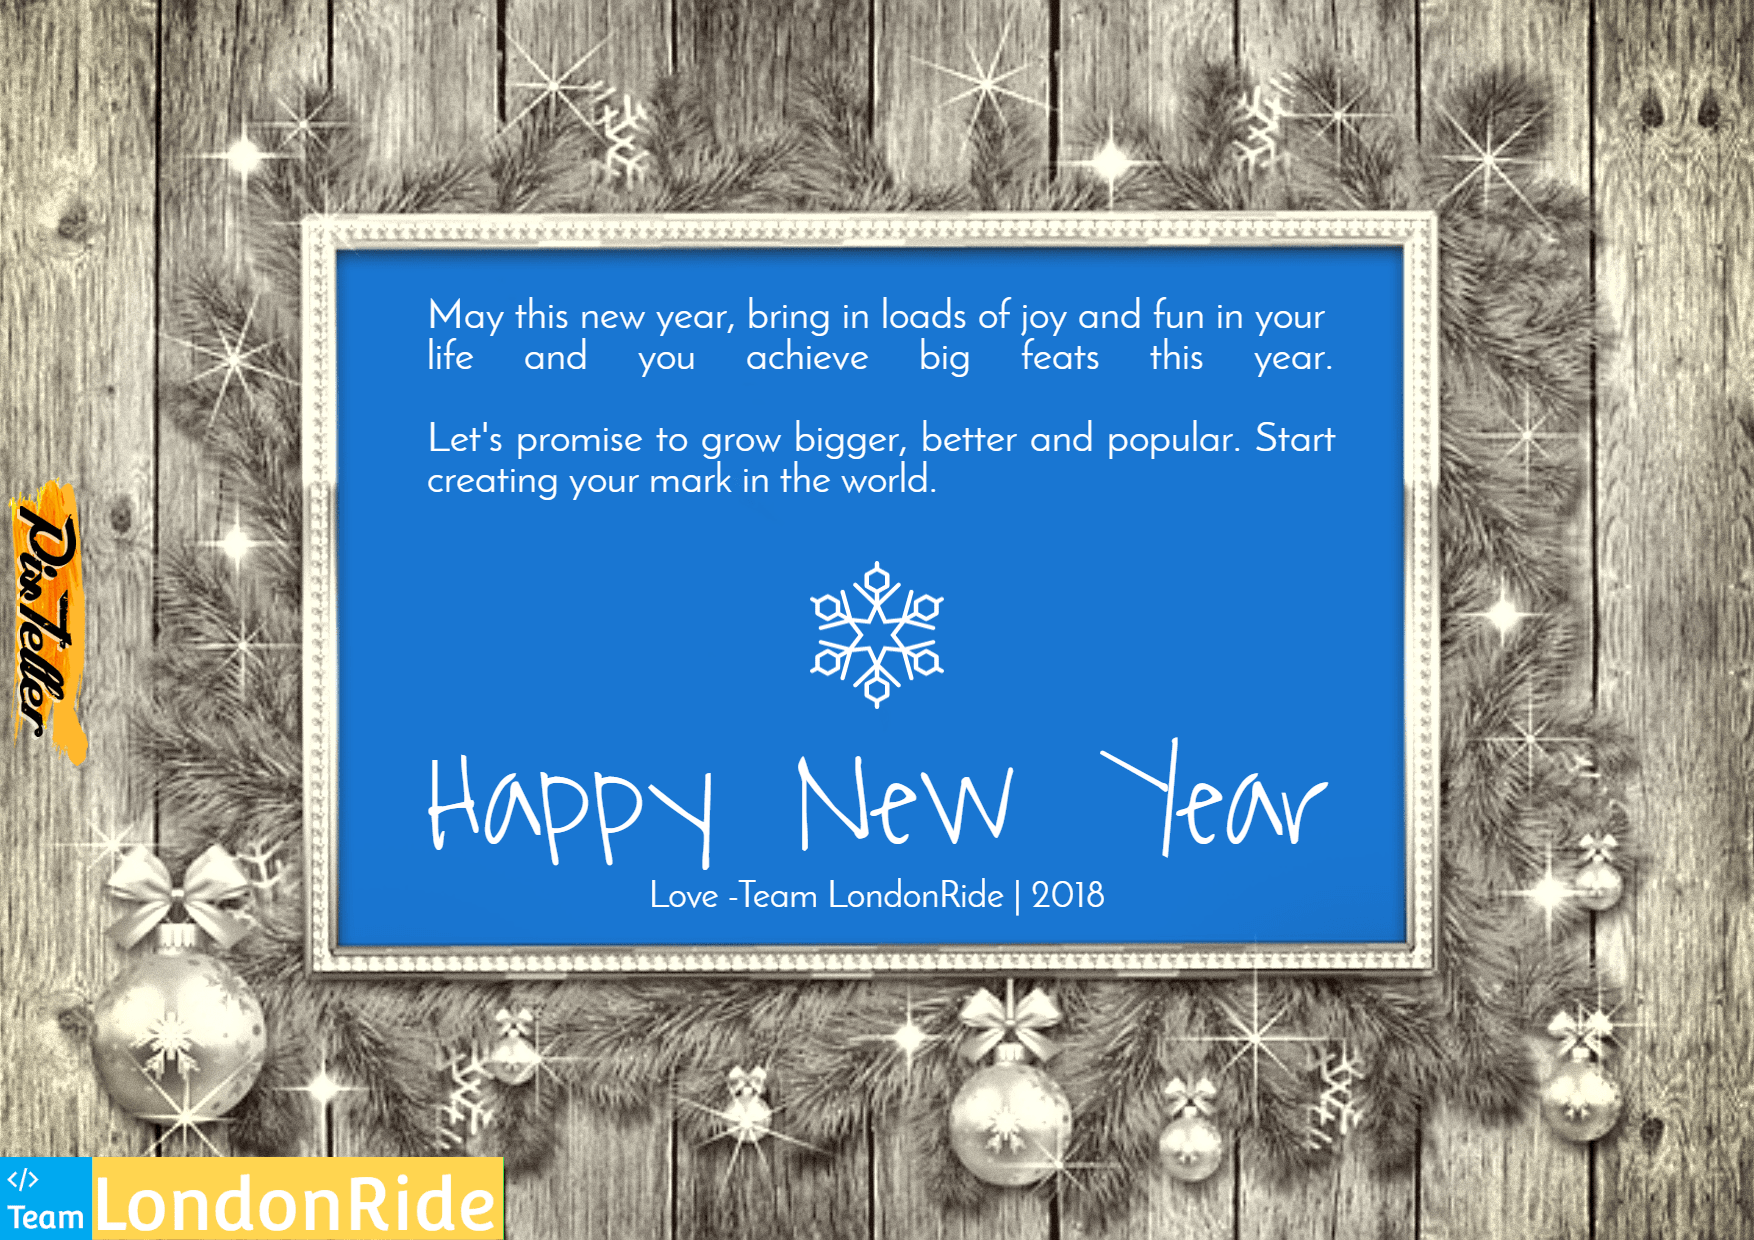 Mockup,                Quote,                Poster,                Happynewyear,                Anniversary,                White,                Black,                Yellow,                Blue,                 Free Image